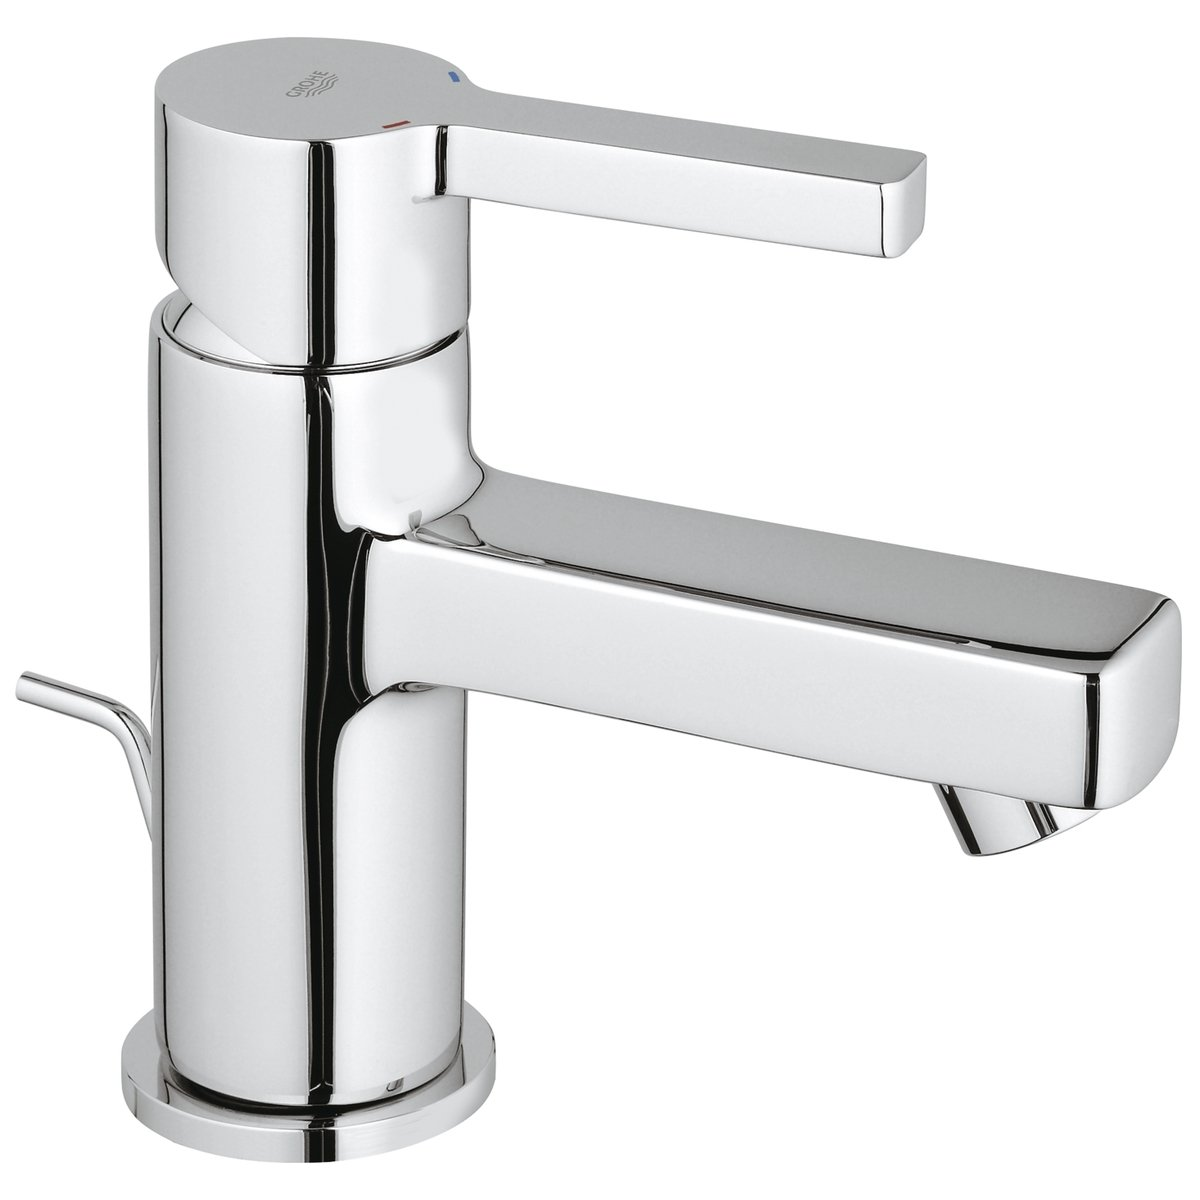 grohe lineare wastafelkraan 28mm met waste chroom 32109000. Black Bedroom Furniture Sets. Home Design Ideas